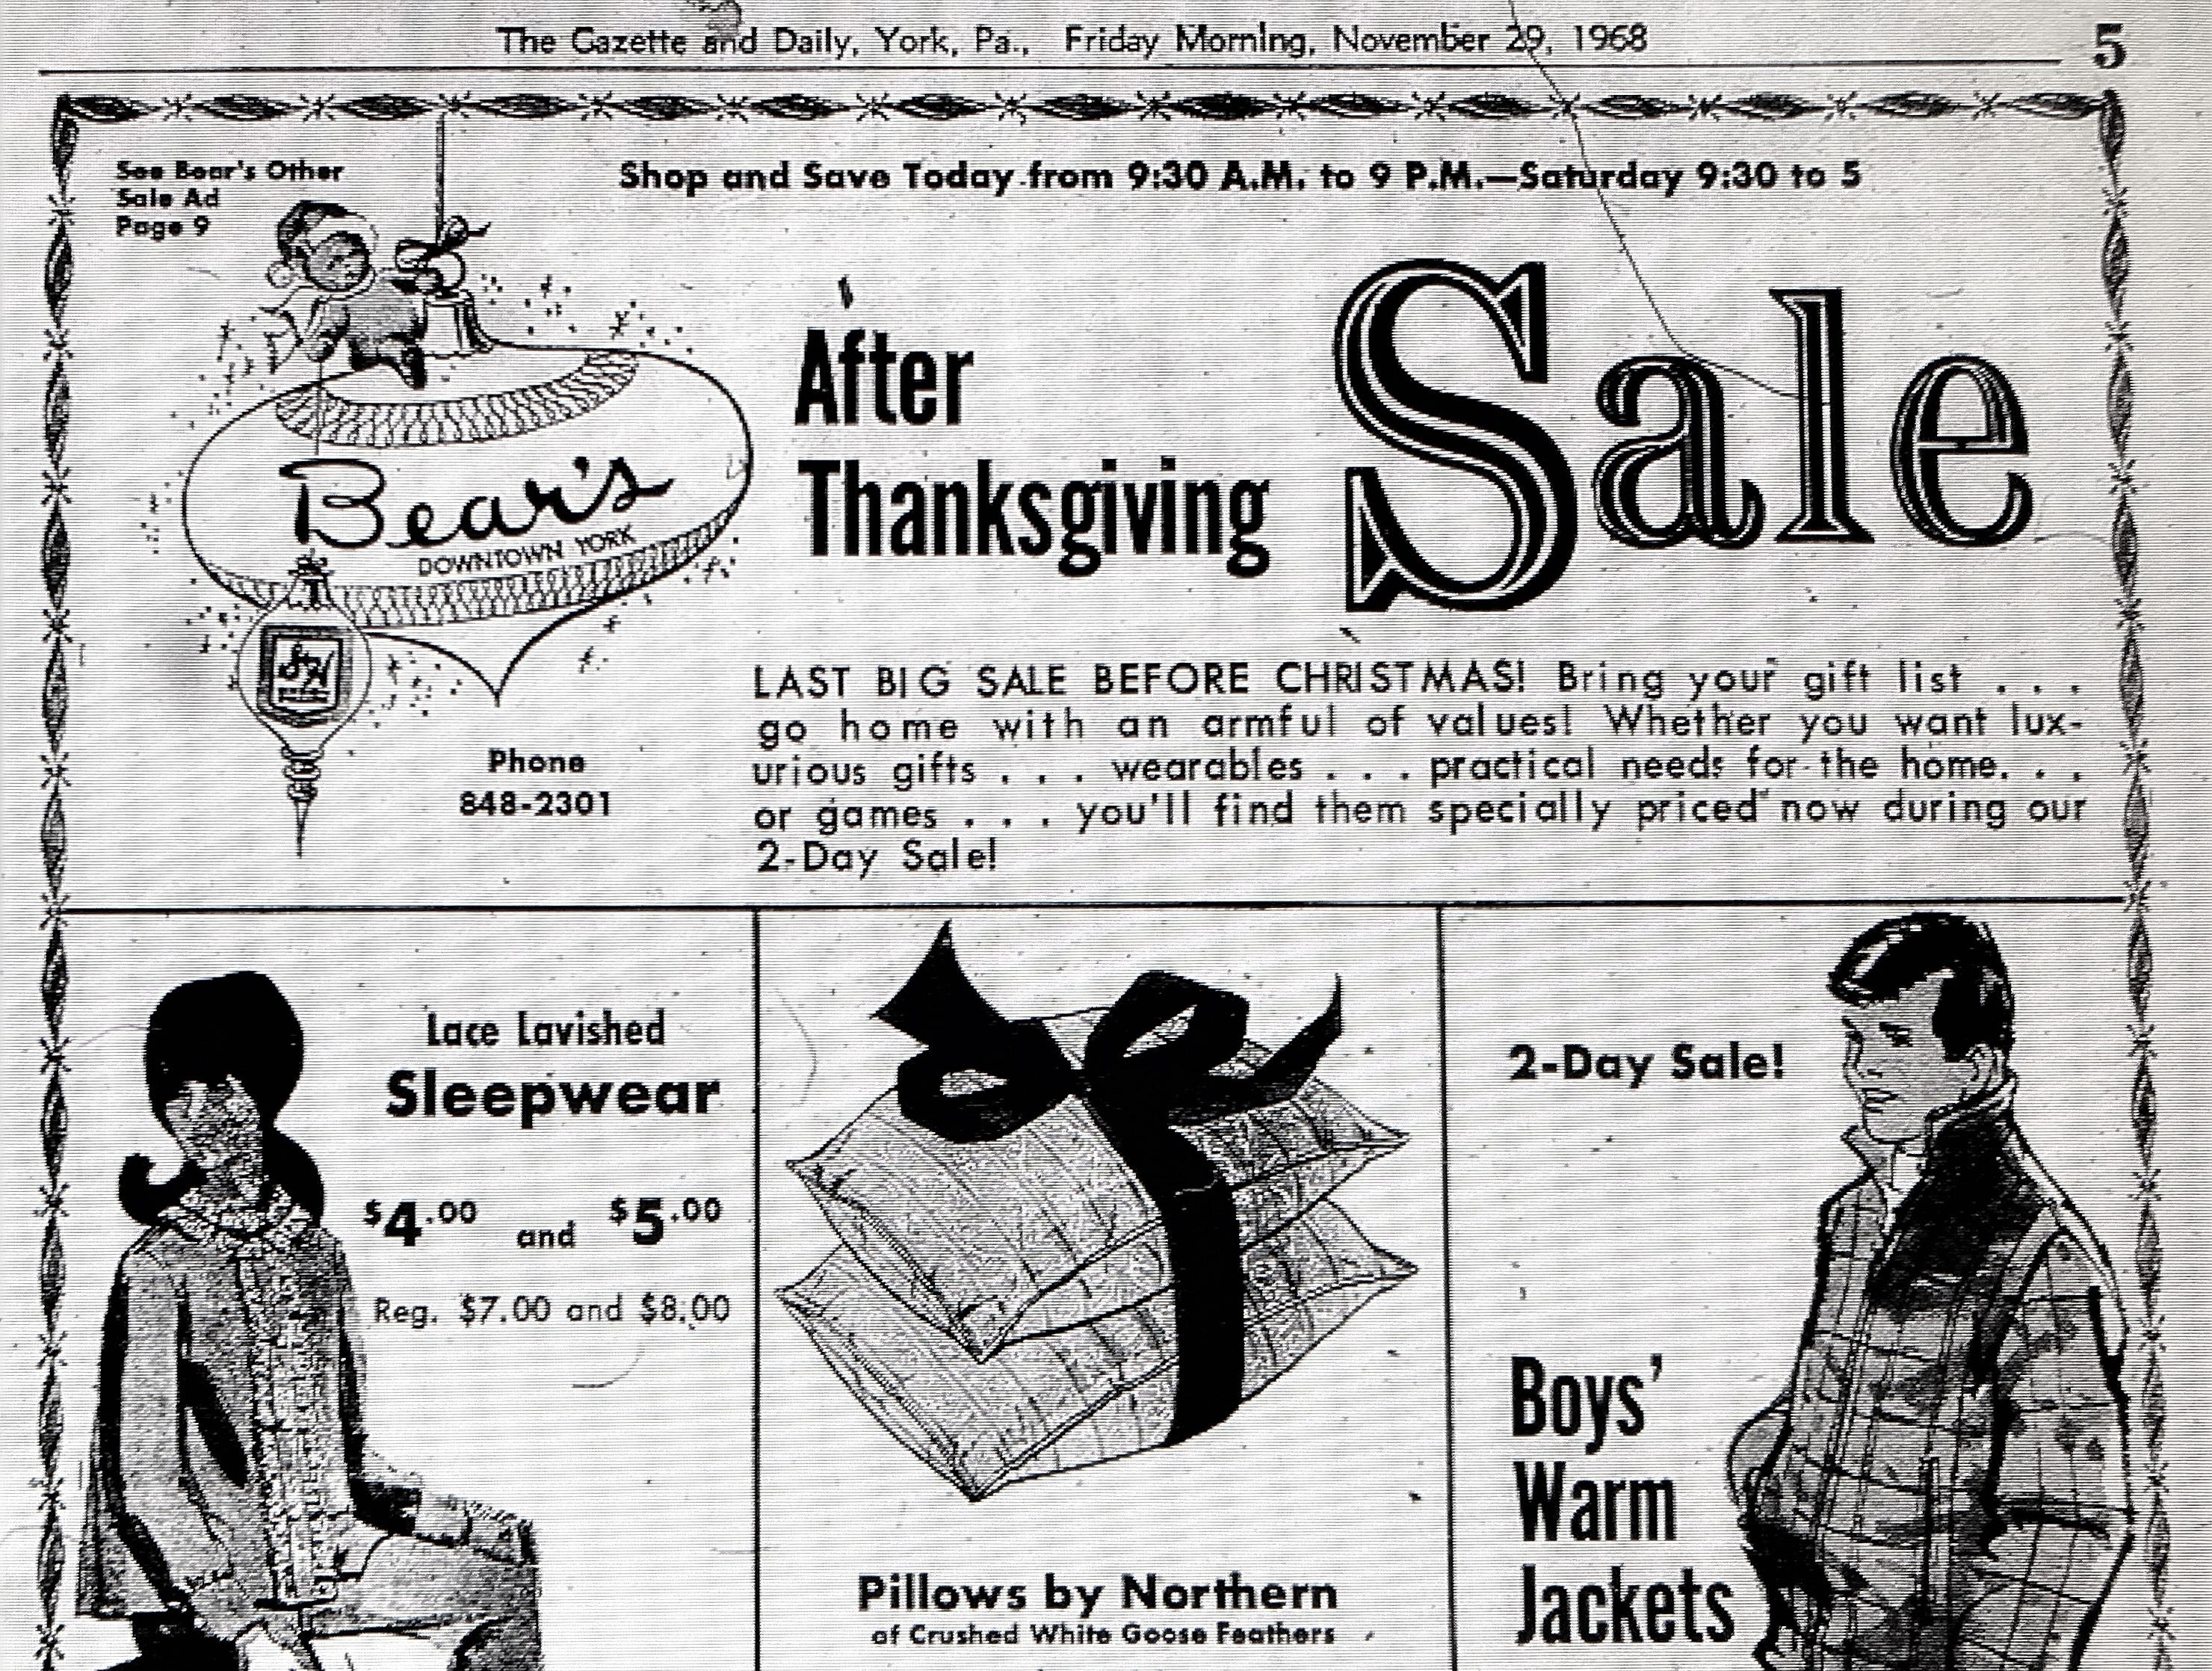 A 1968 after-Thanksgiving promotion for Bear's department store in downtown York. Dating back to the 1880s, Bear's was a longtime fixture in Continental Square. While the department has long since closed, the building has being re-purposed as part of One Marketway West. The advertisement originally appeared in the York Gazette and Daily.